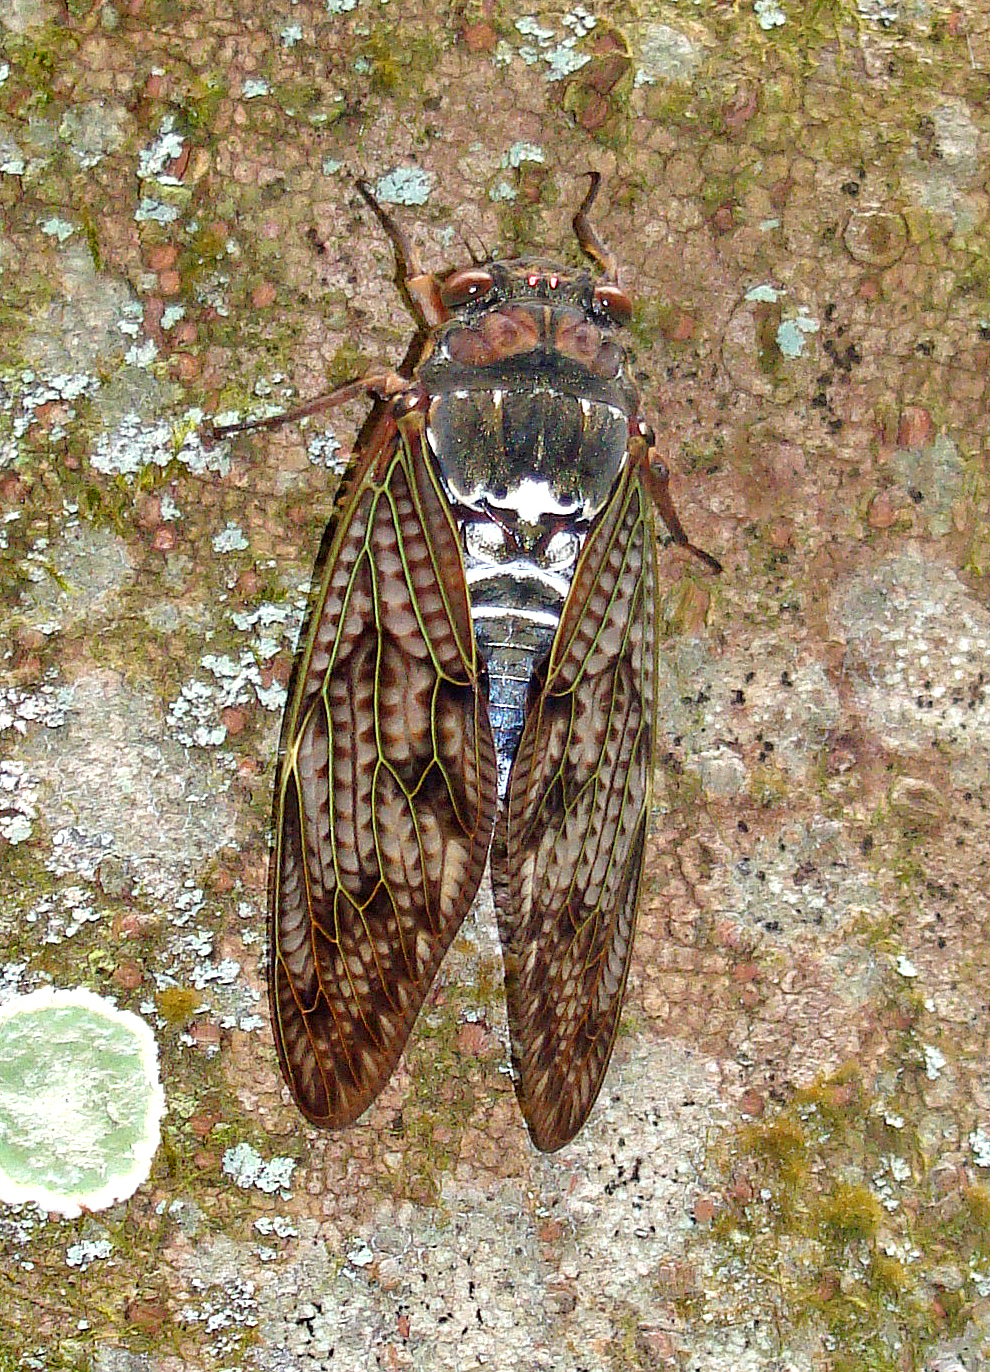 Large brown cicada (Graptopsaltria nigrofuscata) Japan 2